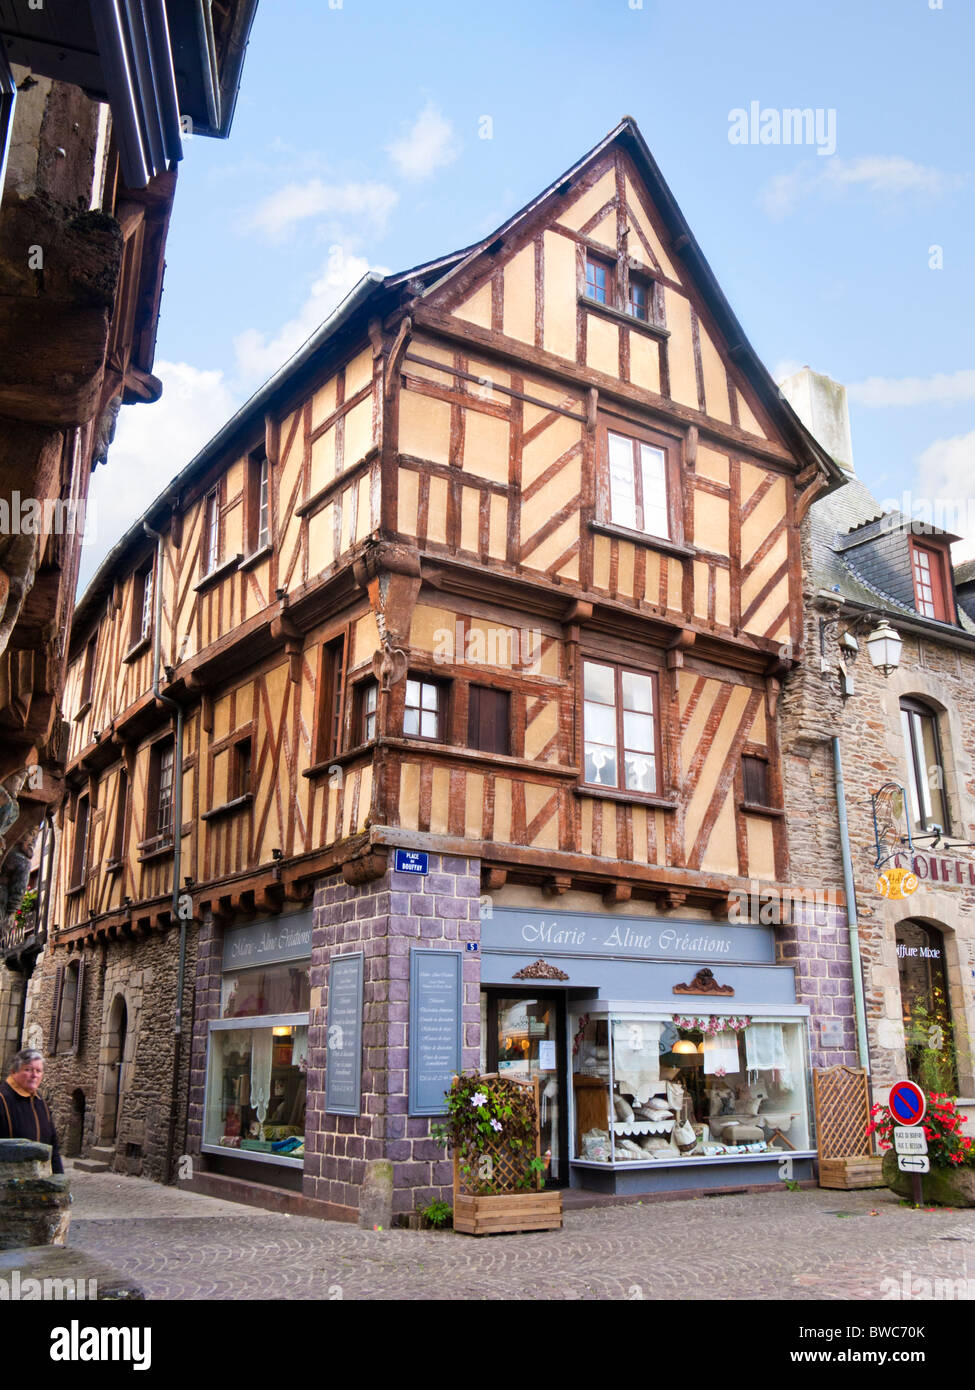 Brittany - Half timbered medieval French house and shop at Malestroit, Morbihan, Brittany, France, Europe - Stock Image